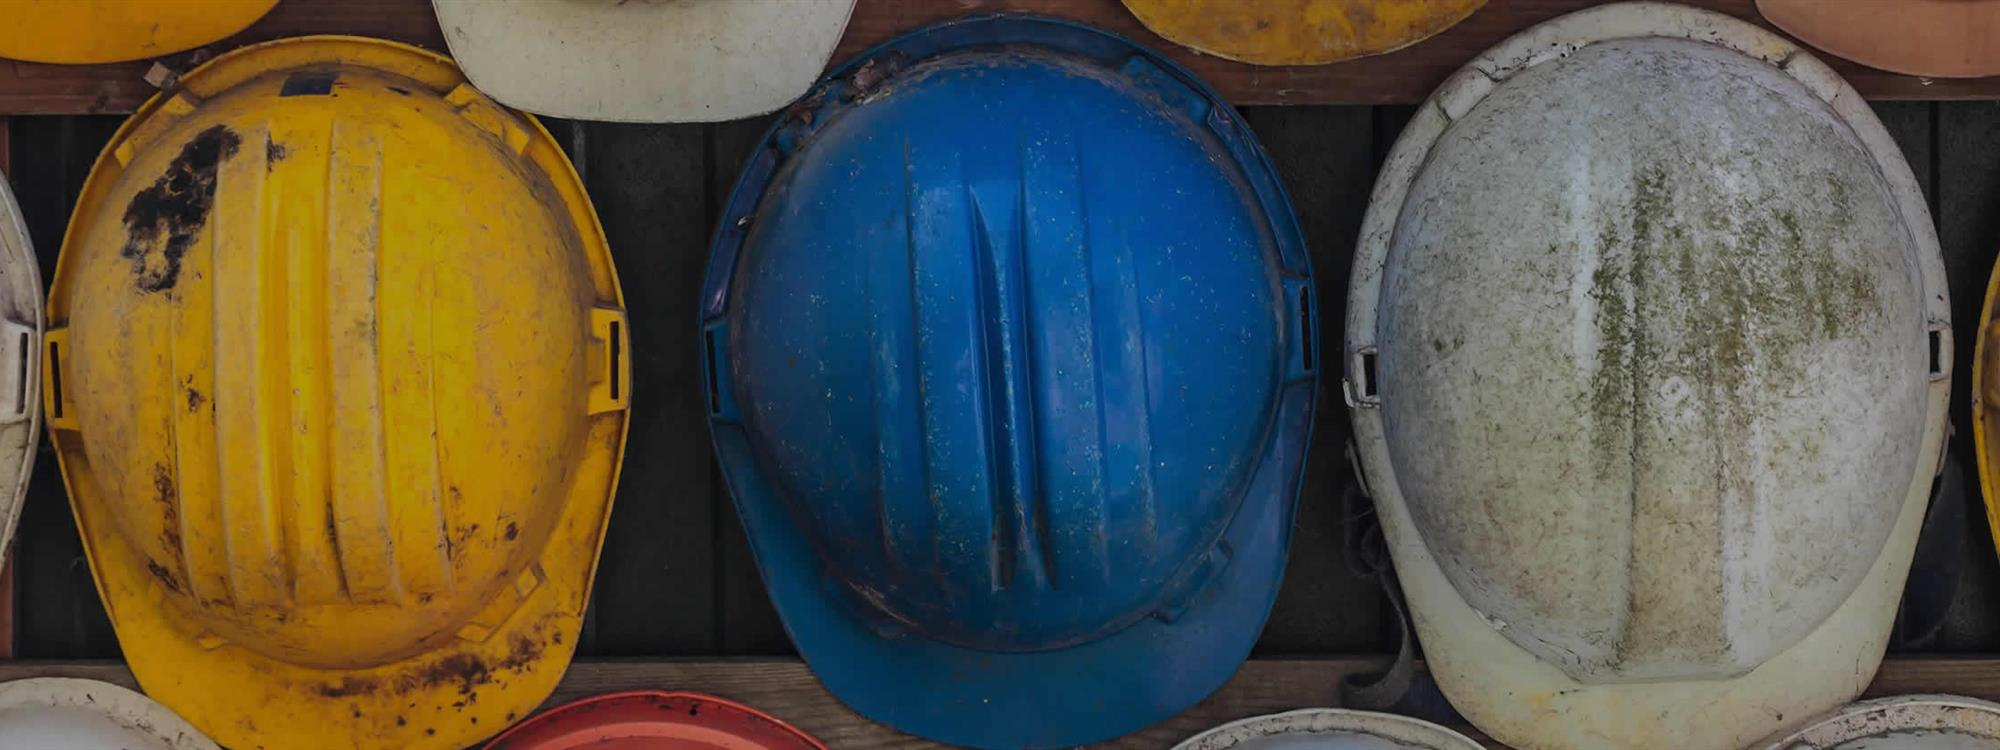 multiple hard hats next to each other